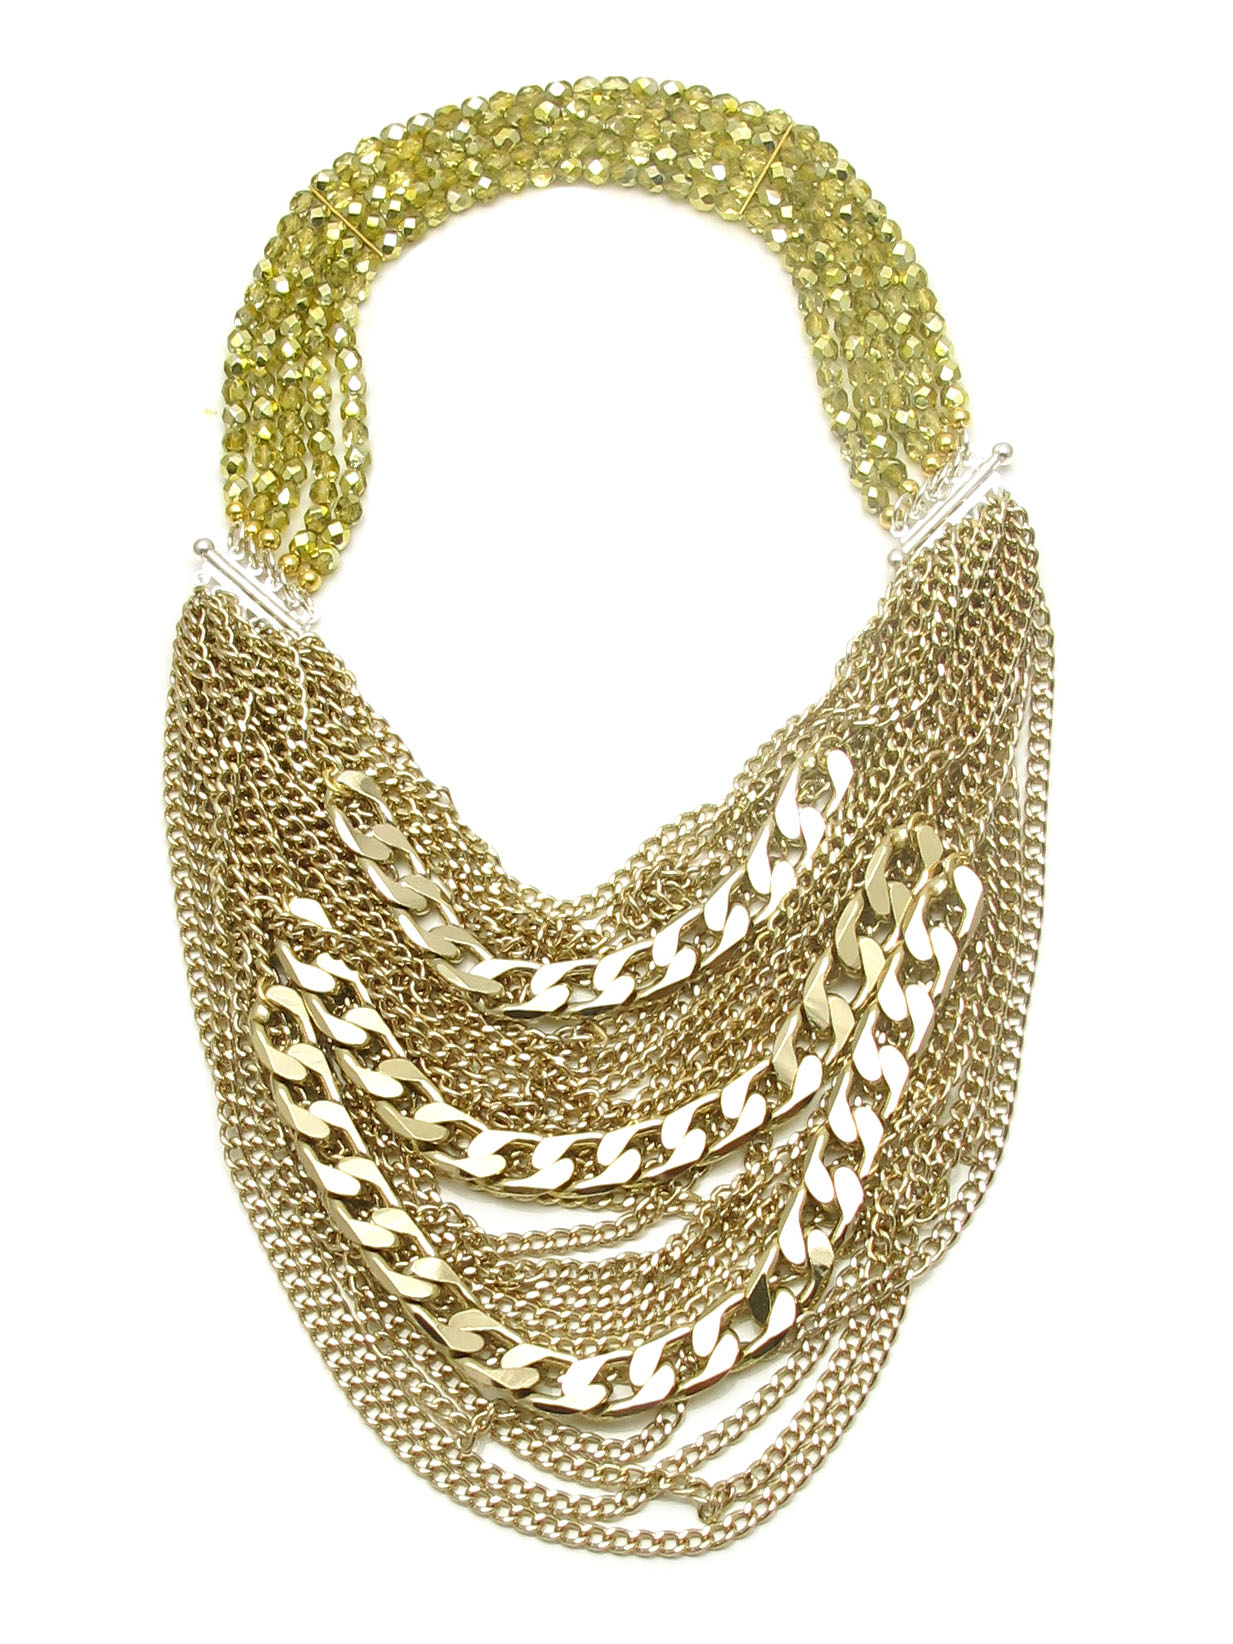 012G Gold Chain Bib.jpg